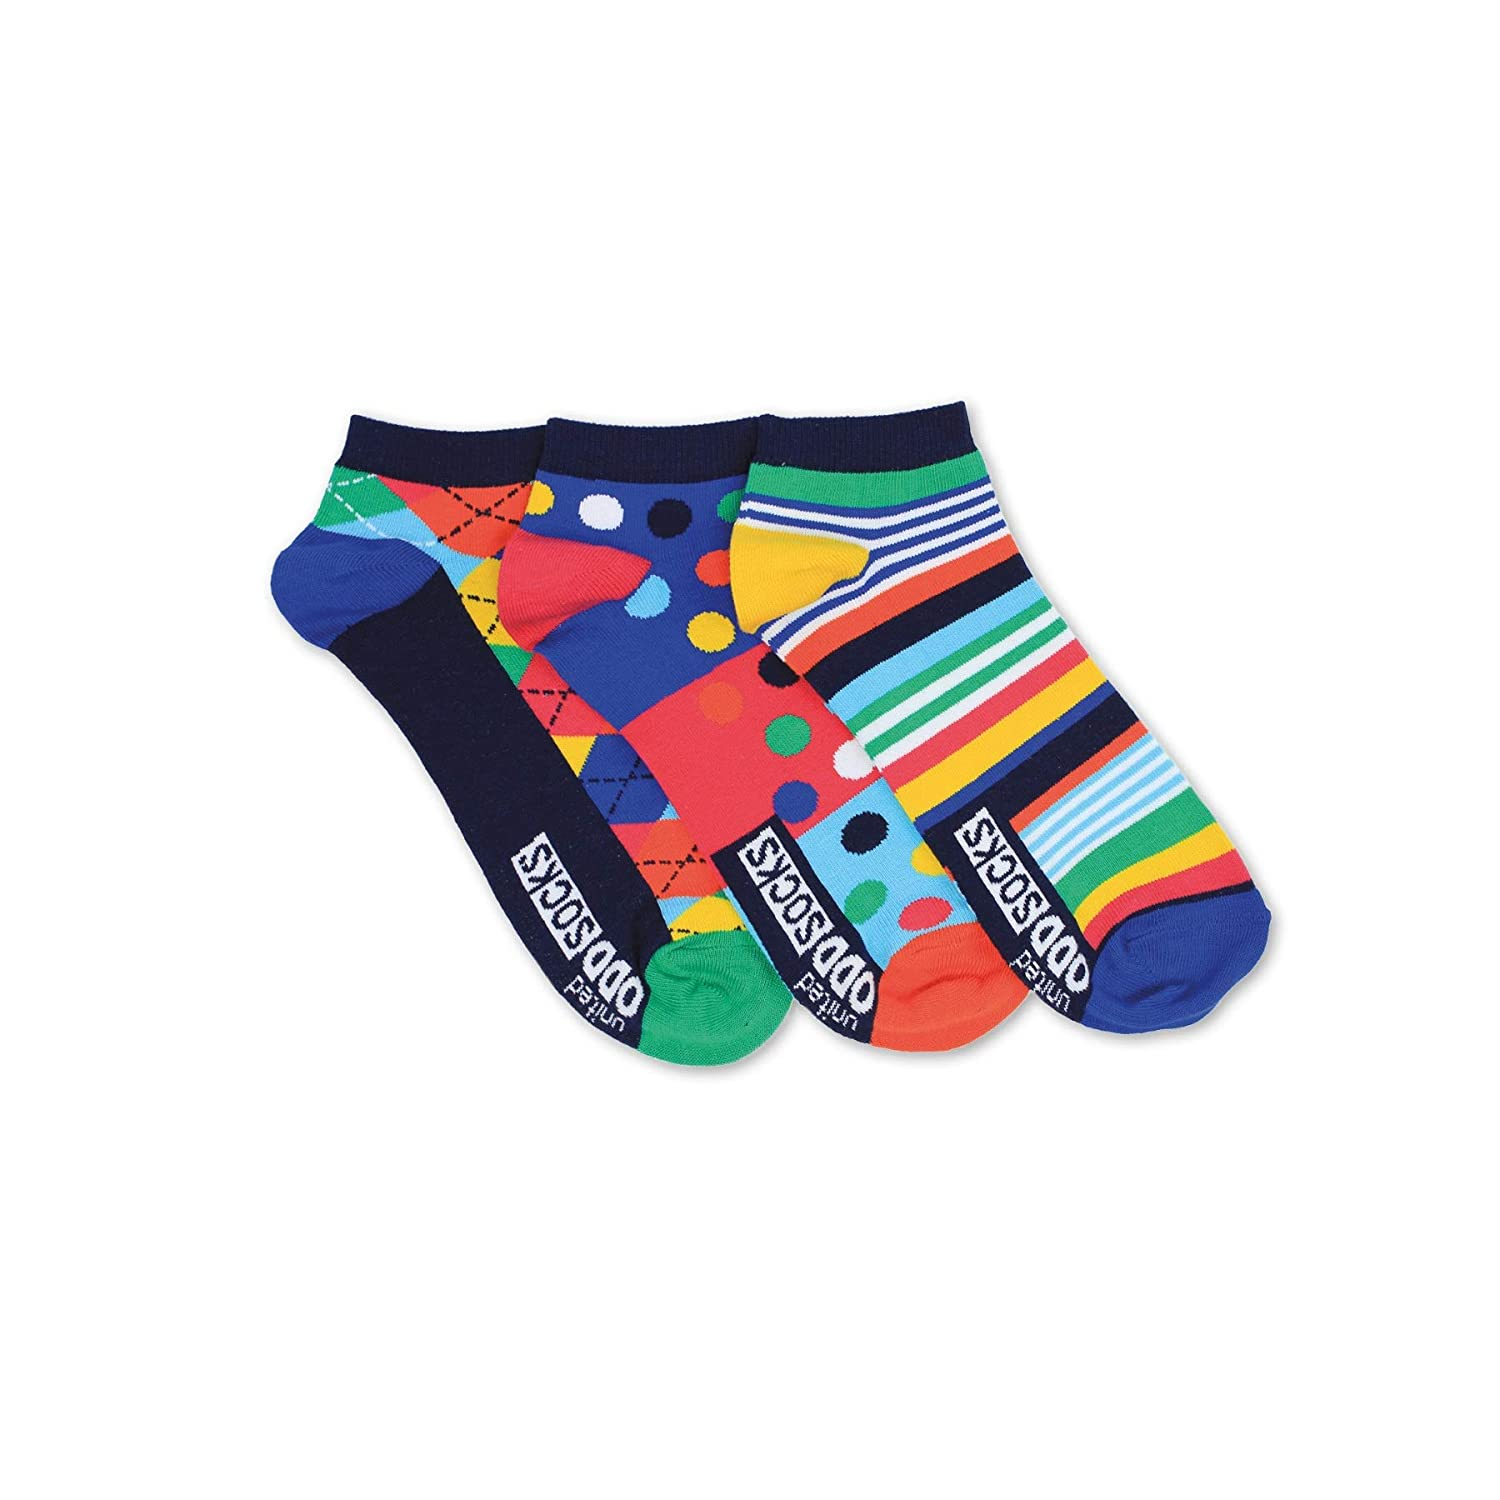 Calzini Uomo Multicolore multicolore 40-45 United Oddsocks